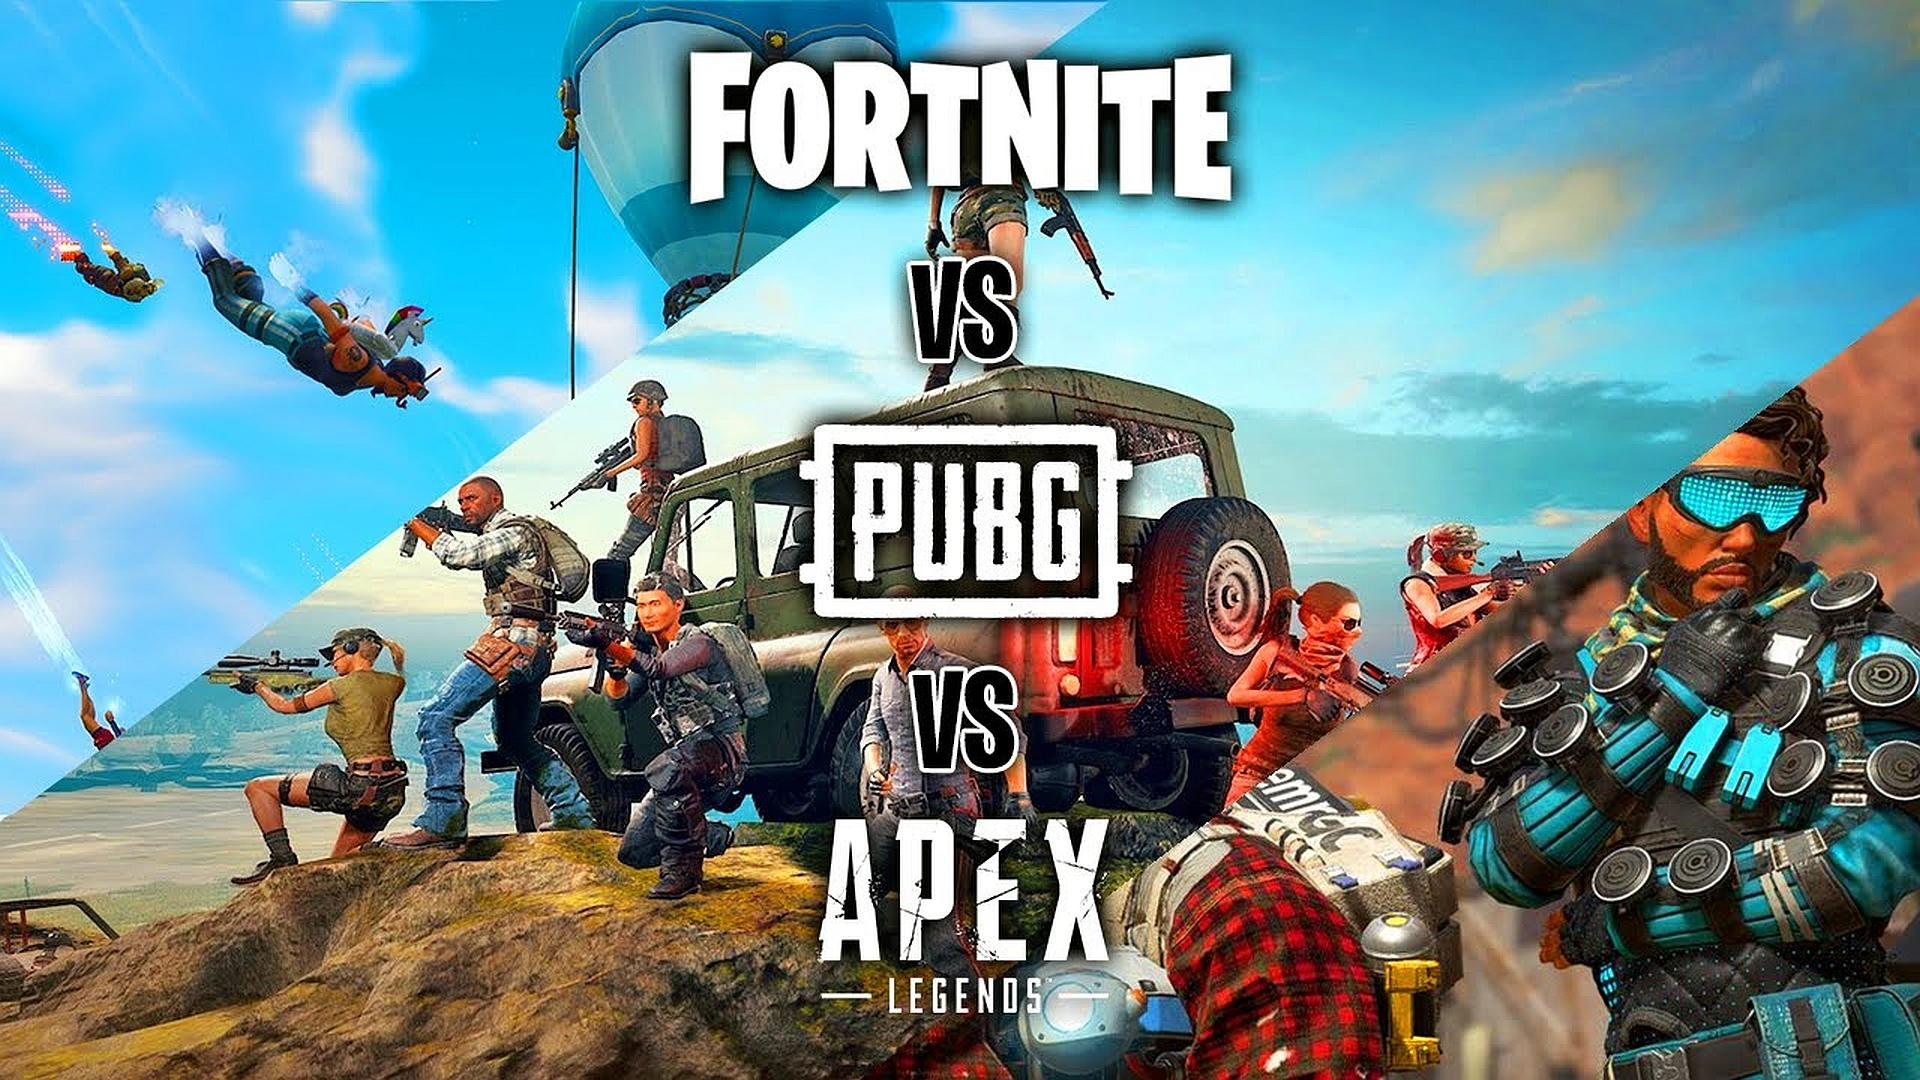 Fortnite Sales Reportedly Dropped 52 Since Q2 2018 Apex